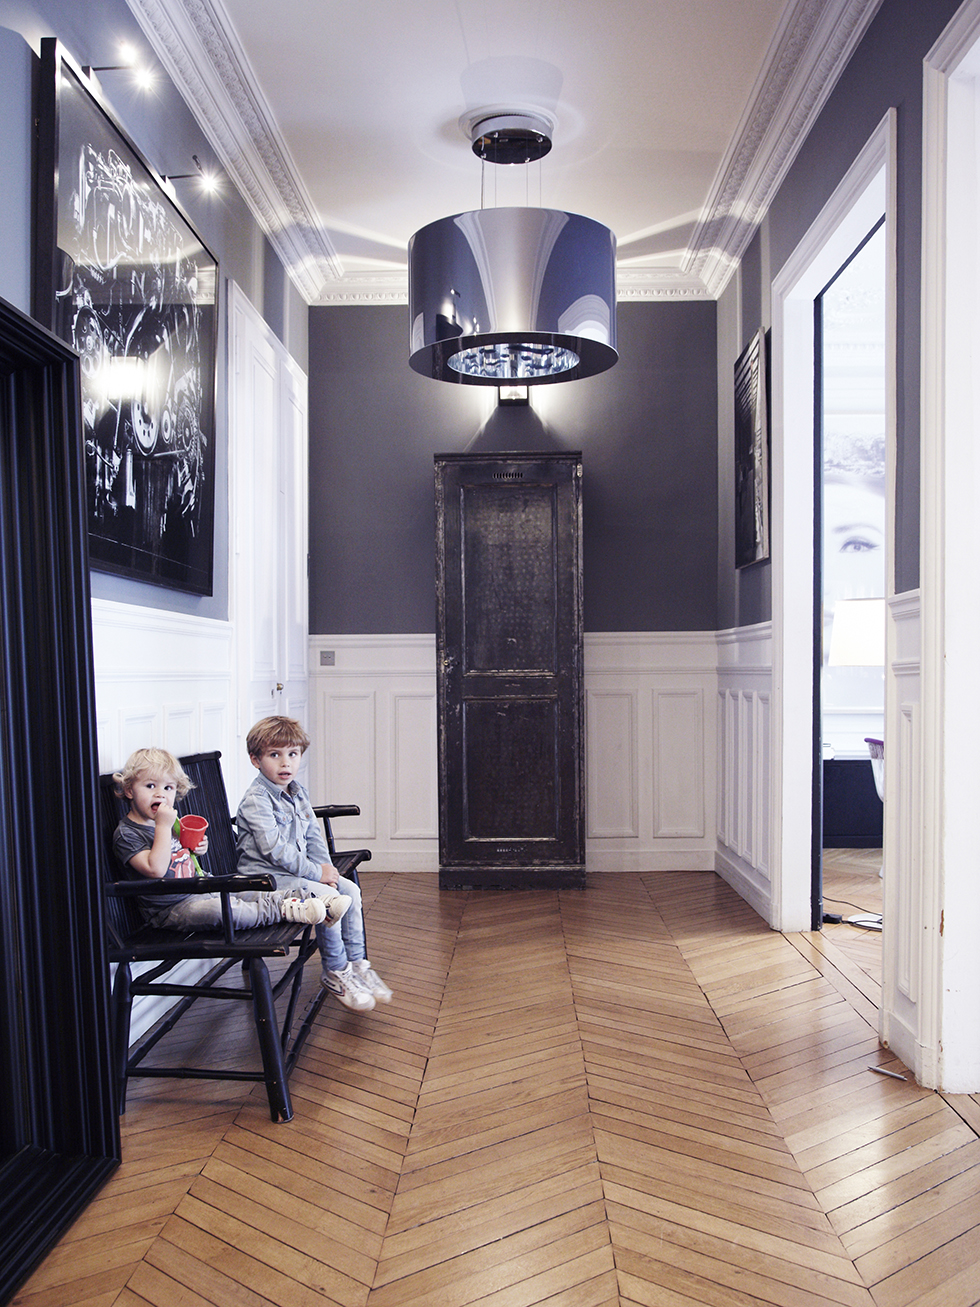 Un int rieur parisien so chic frenchy fancy - Idee amenagement placard entree ...